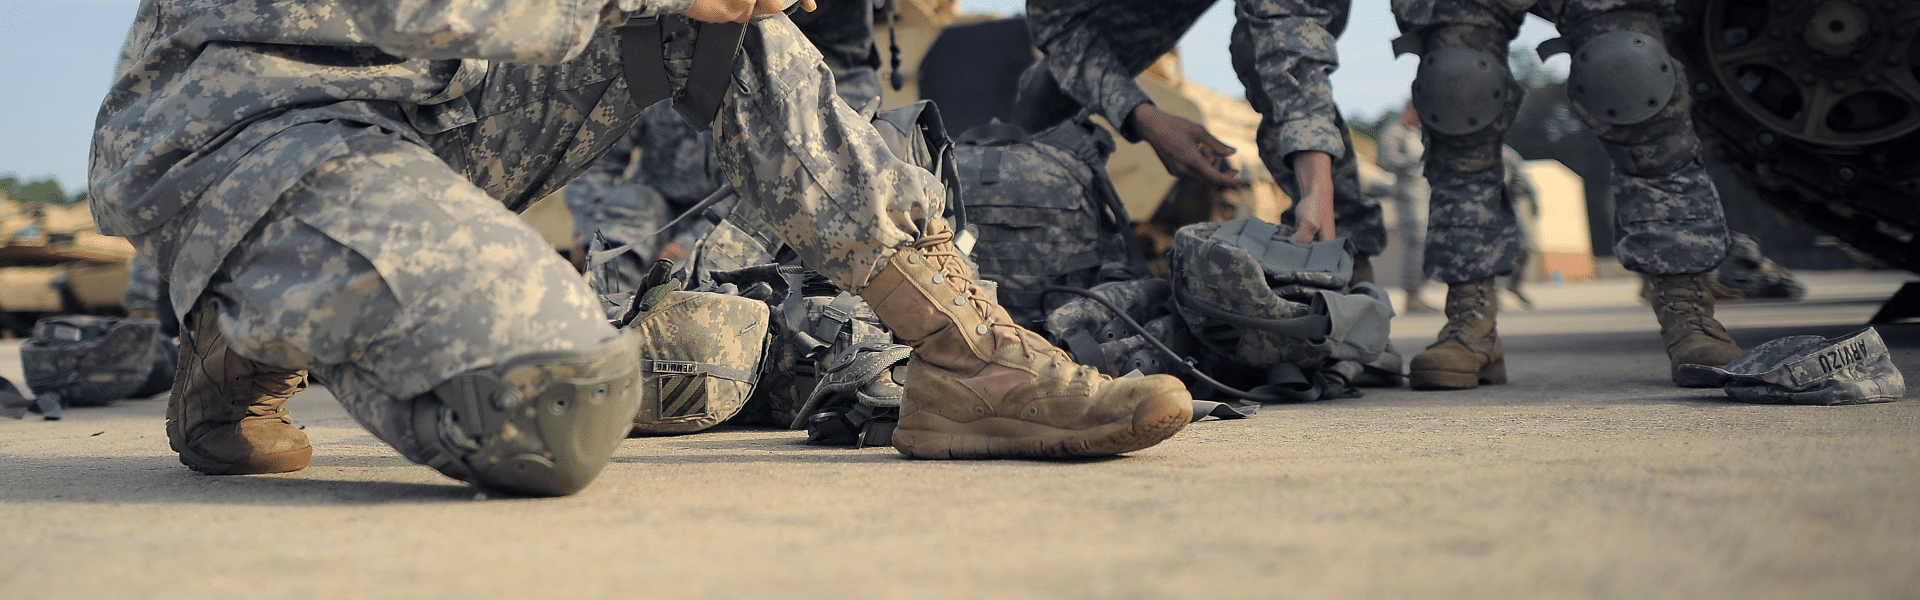 Best Tactical Boots Reviewed in Detail